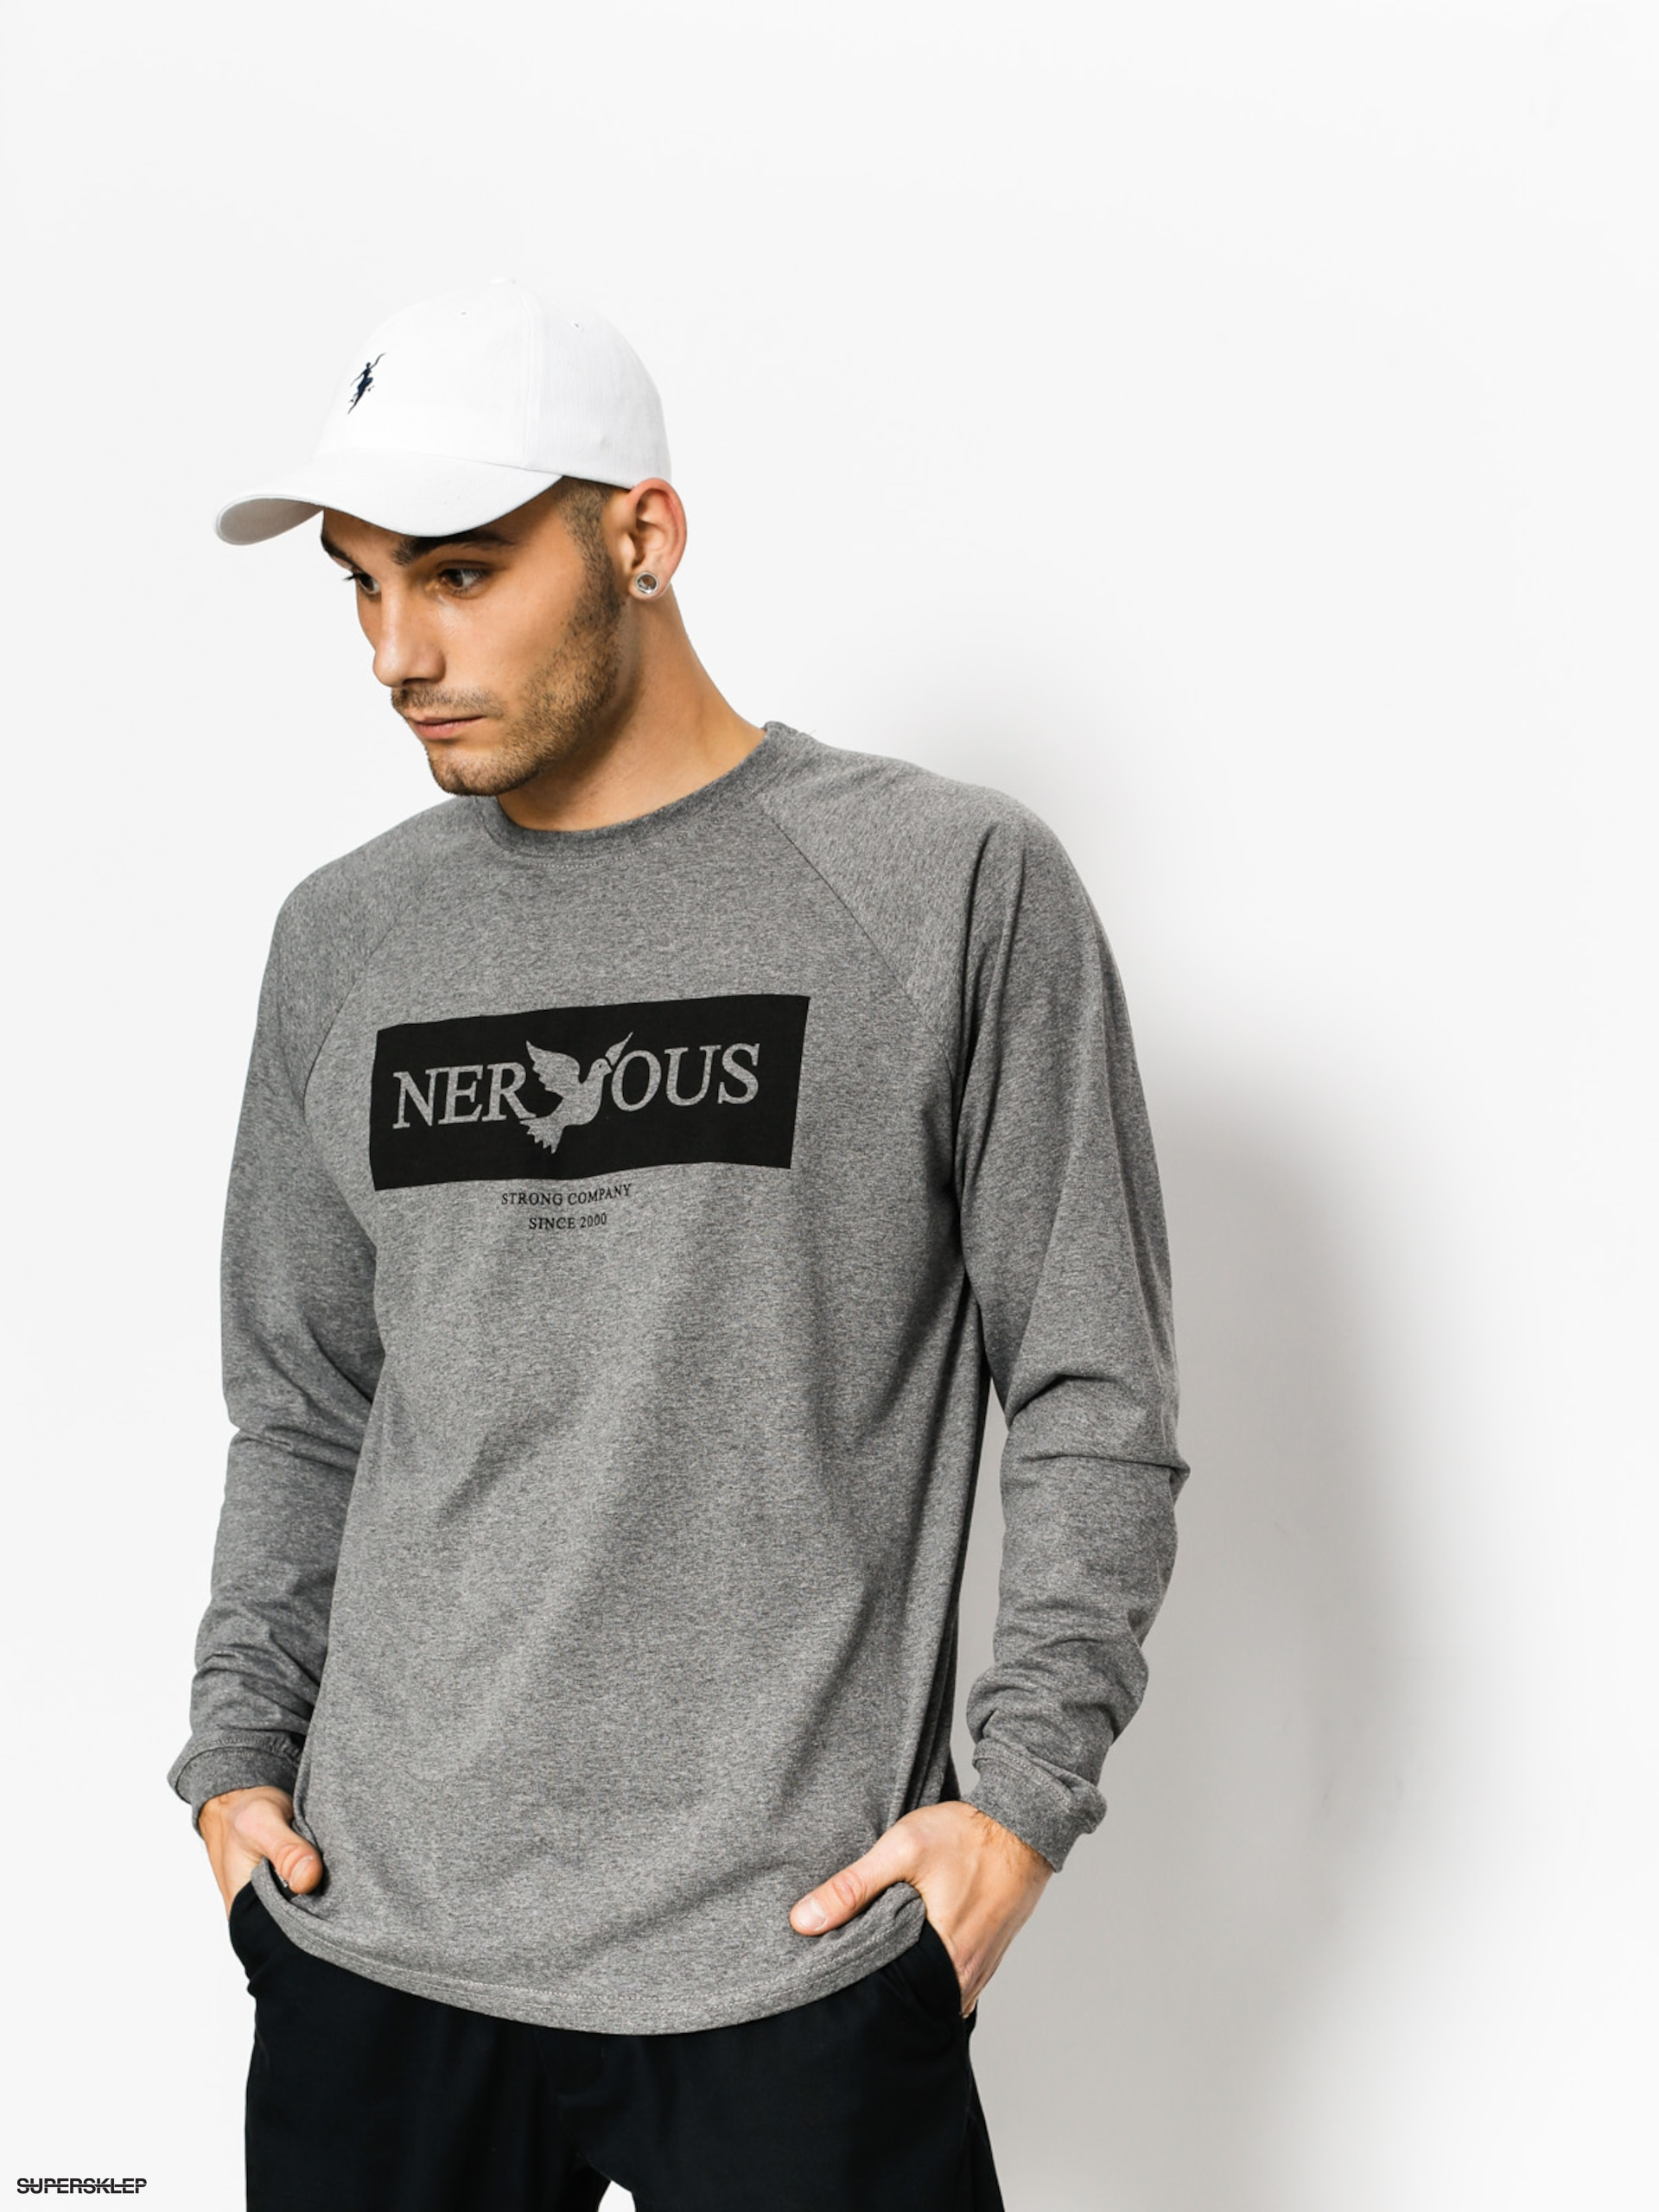 Nervous Longsleeve Brand Box (graphite)